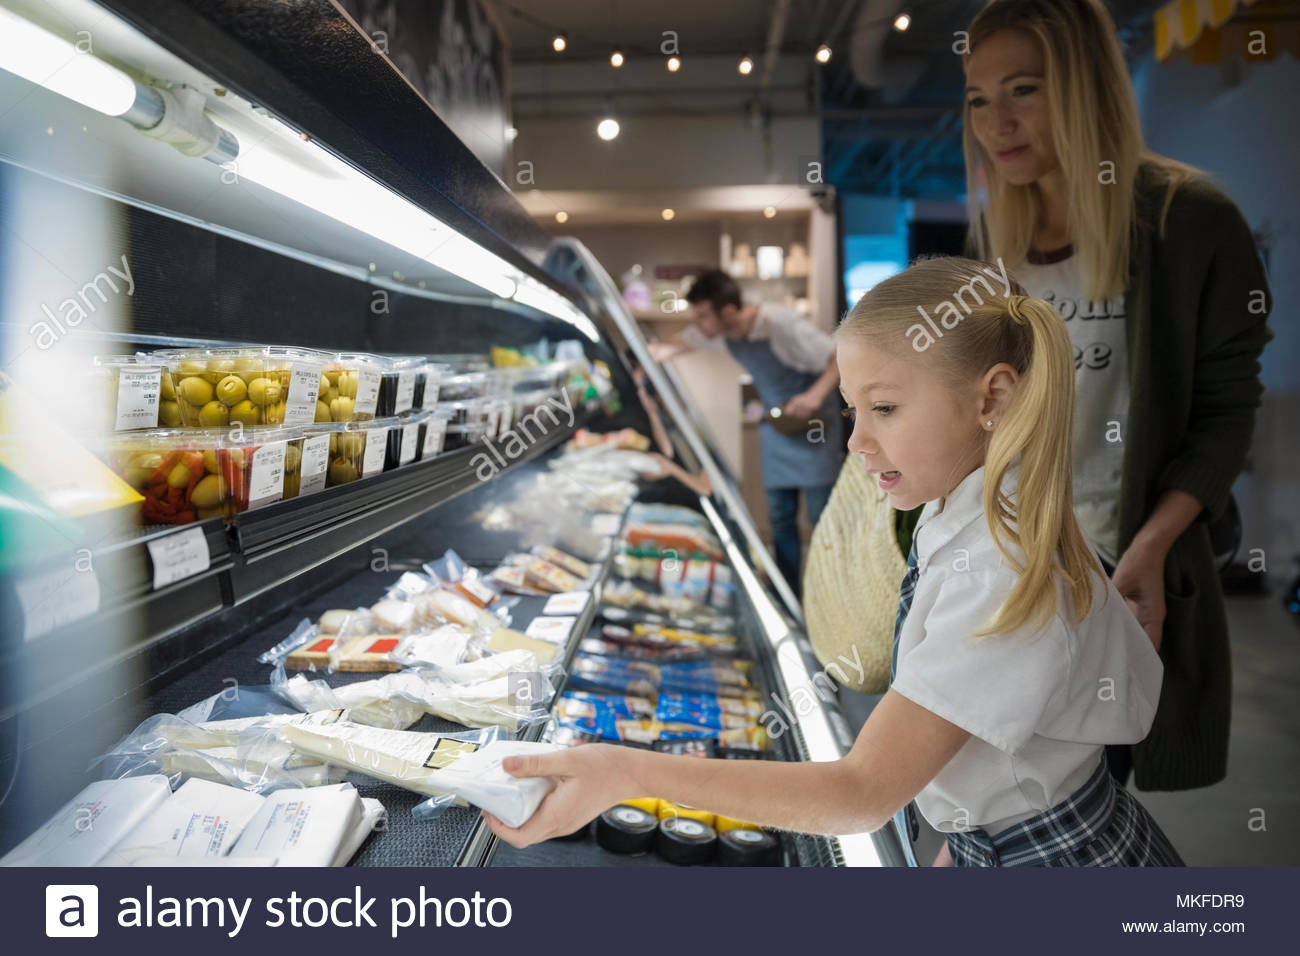 Mother and daughter grocery shopping in market - Stock Image